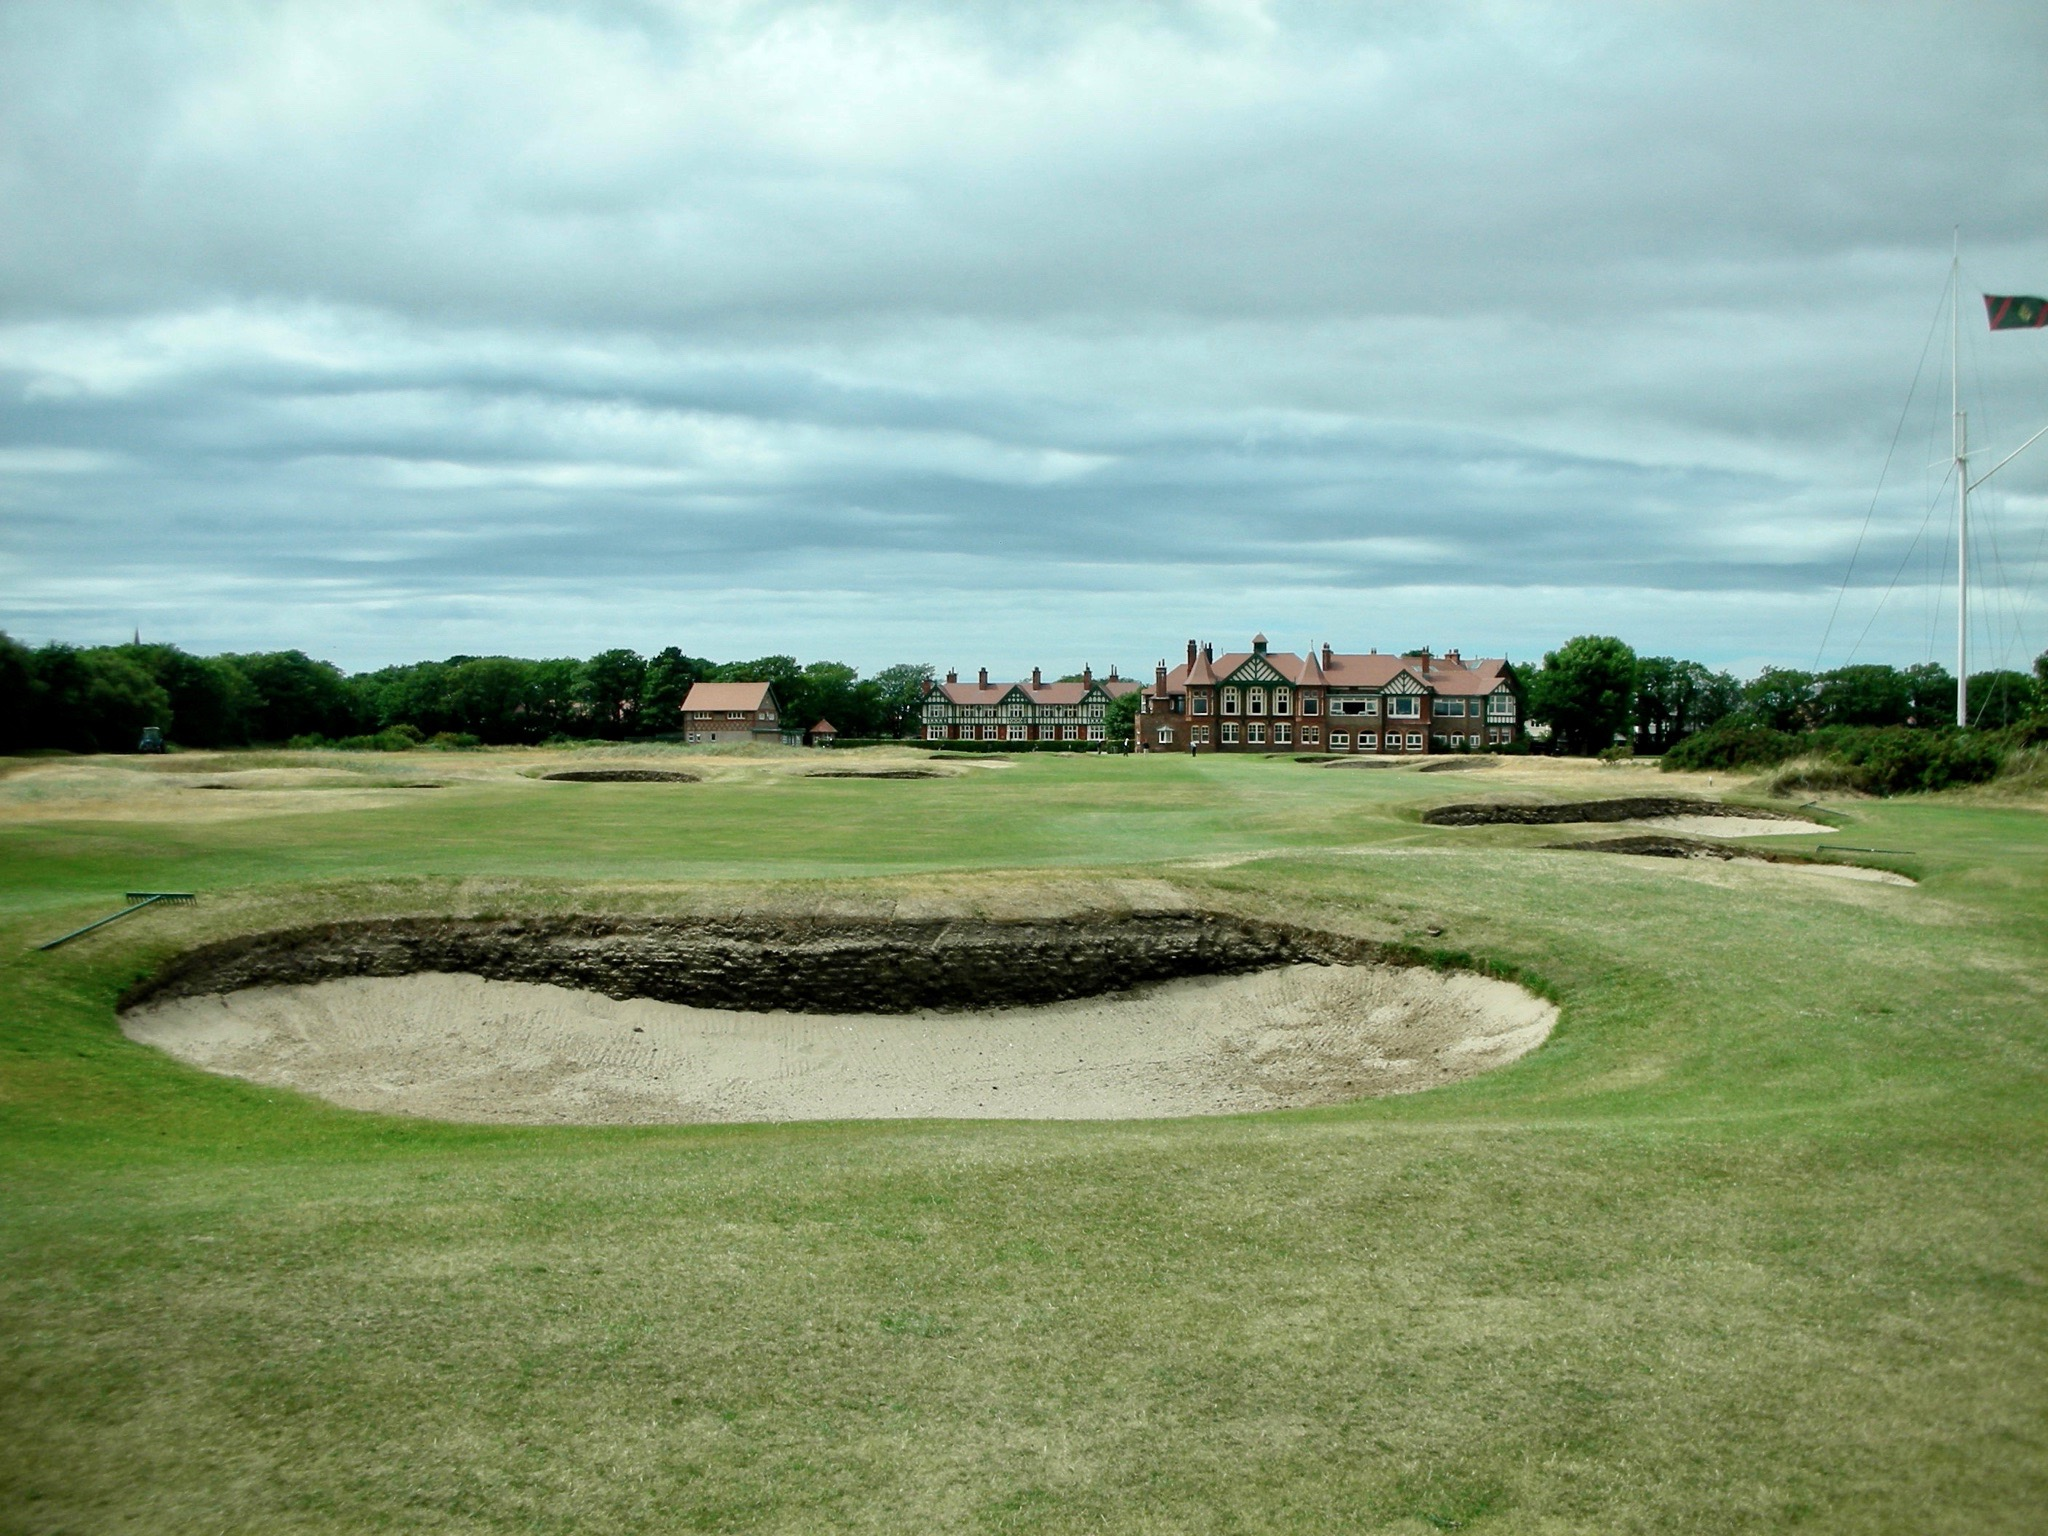 Royal Lytham & St Annes- 18th hole & clubhouse